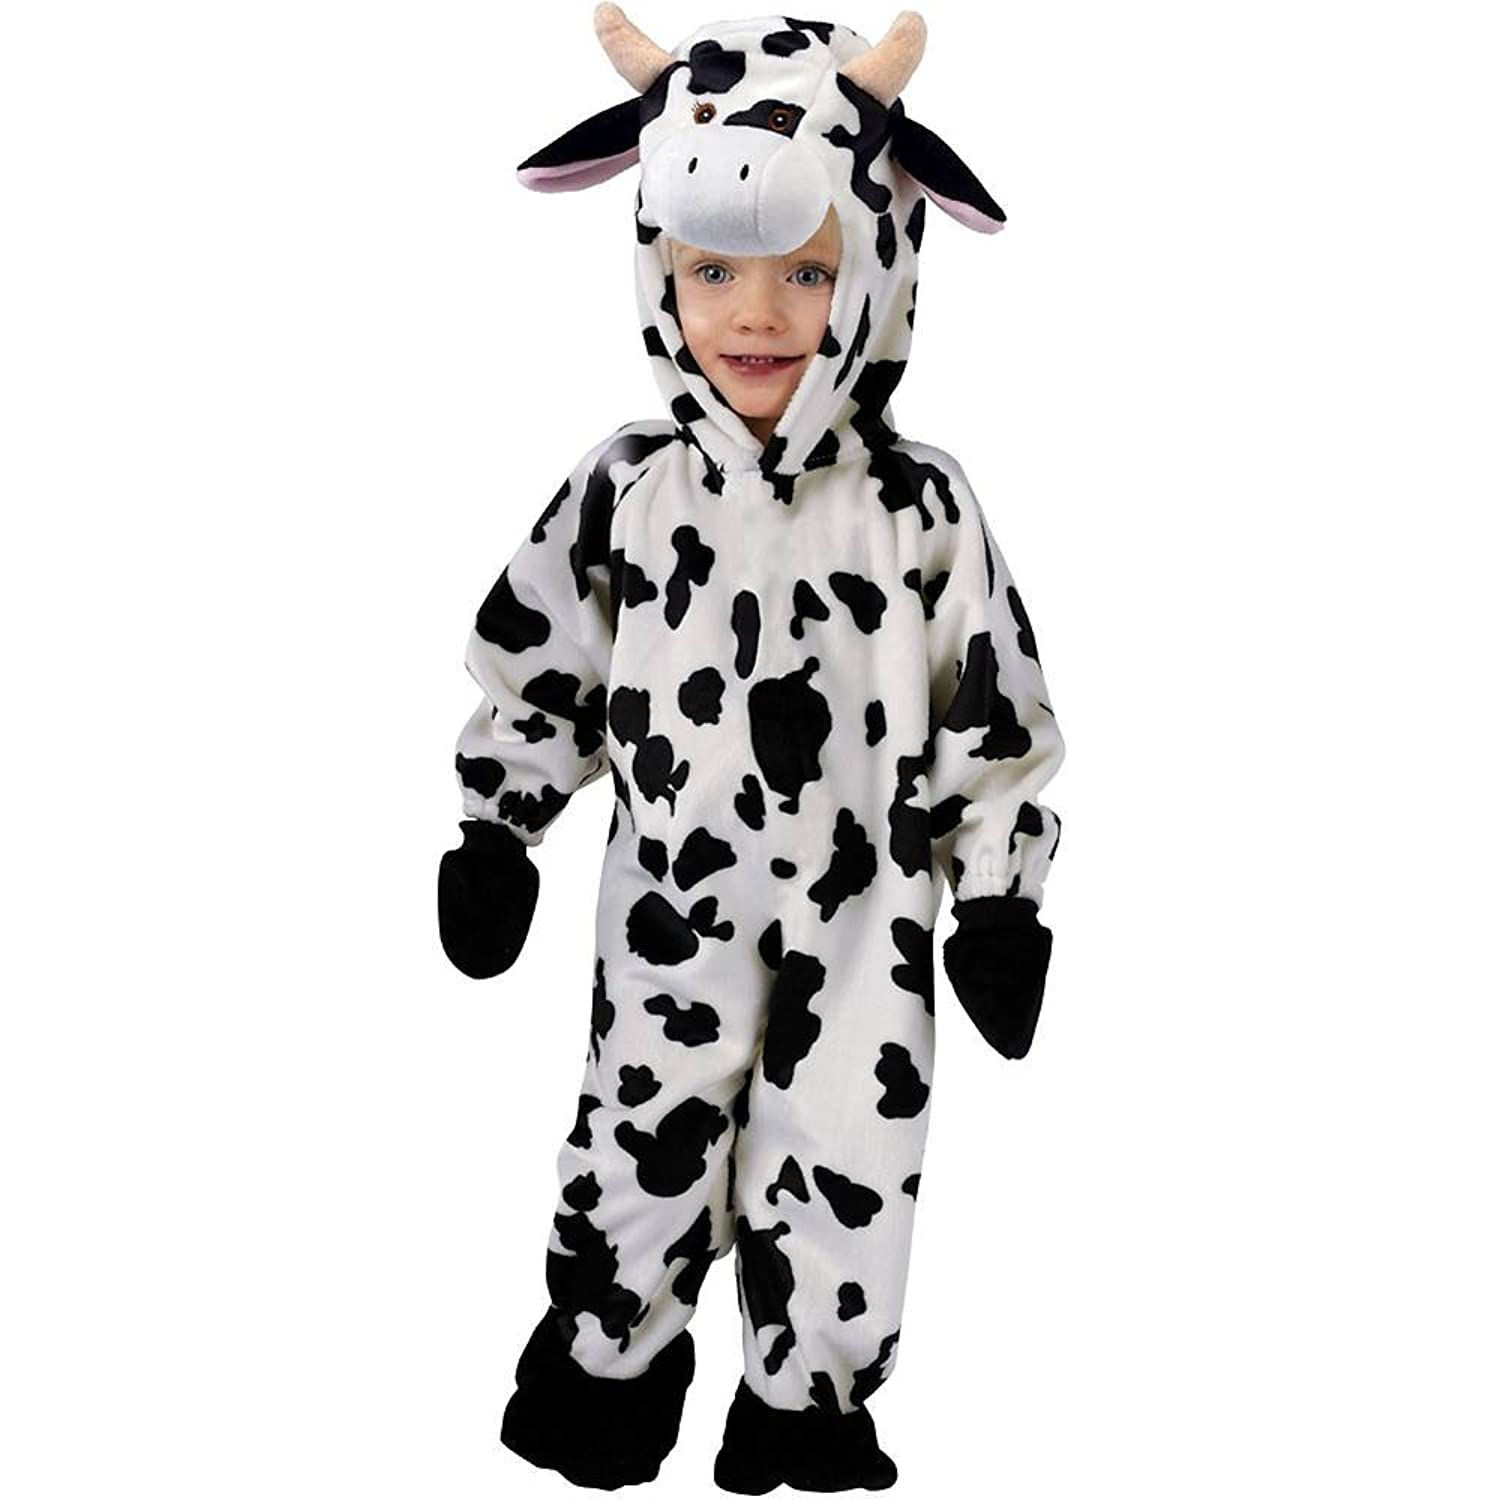 Cuddly Cow Baby Toddler Costume